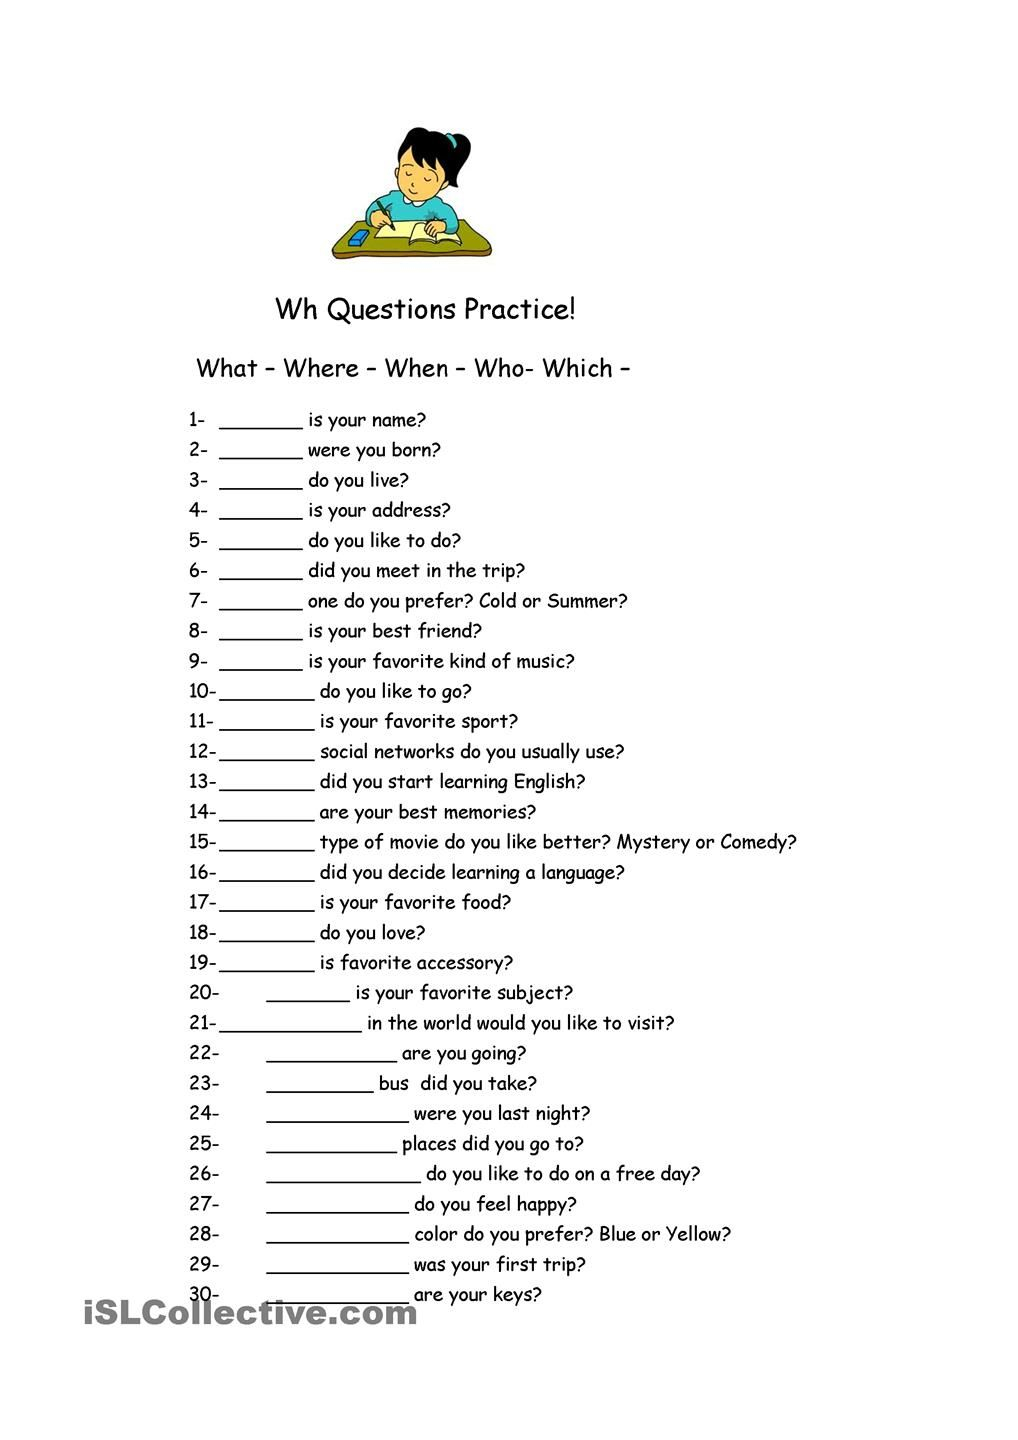 Wh Questions Practice.   Wh Questions Worksheets, Reading